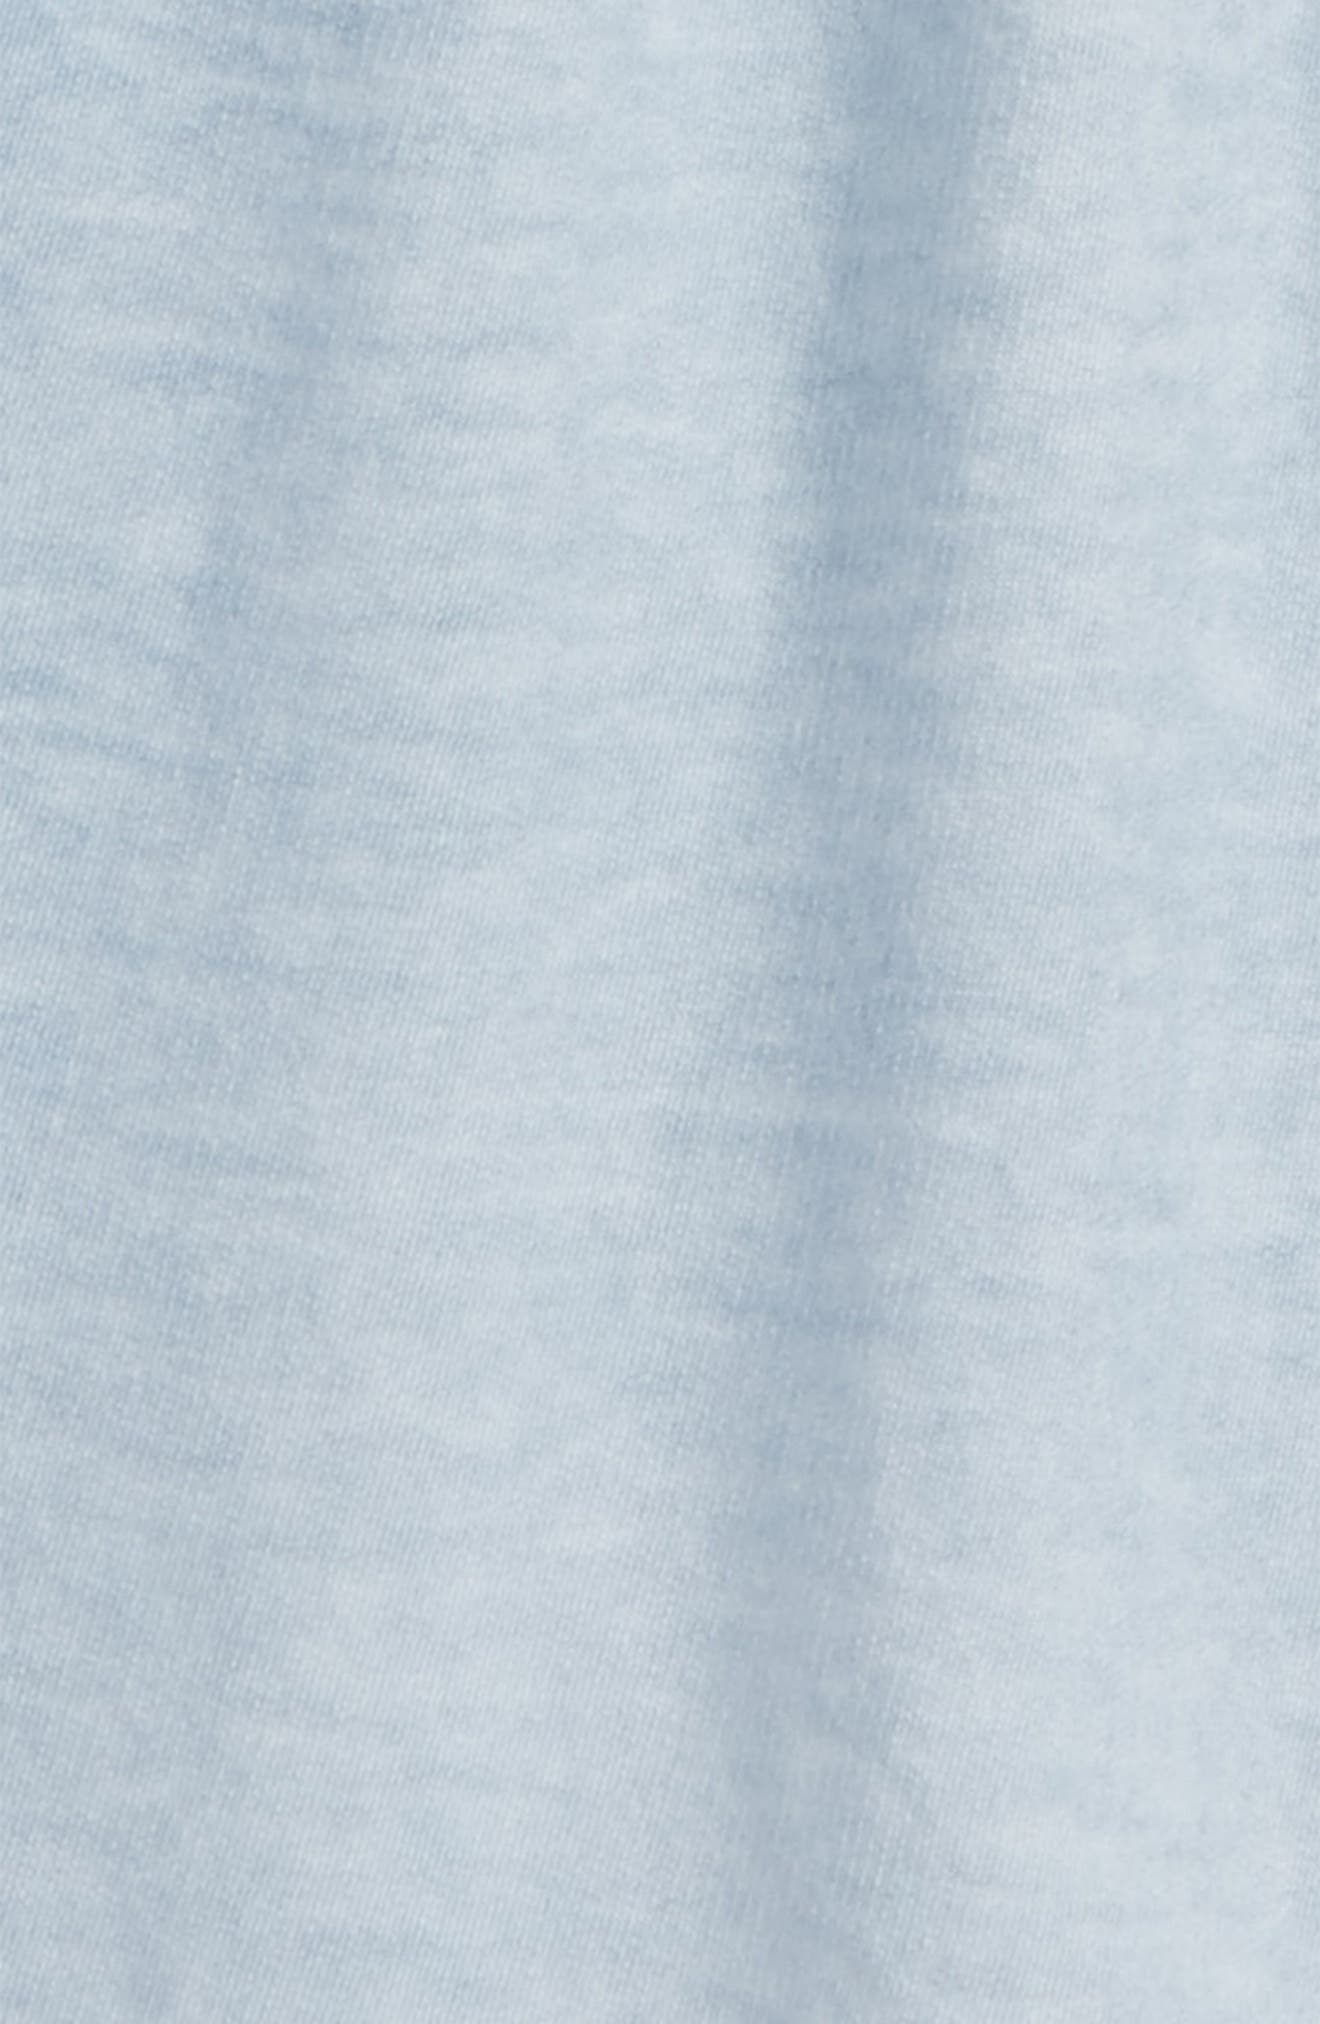 Cotton Shorts,                             Alternate thumbnail 2, color,                             Blue Fog Wash